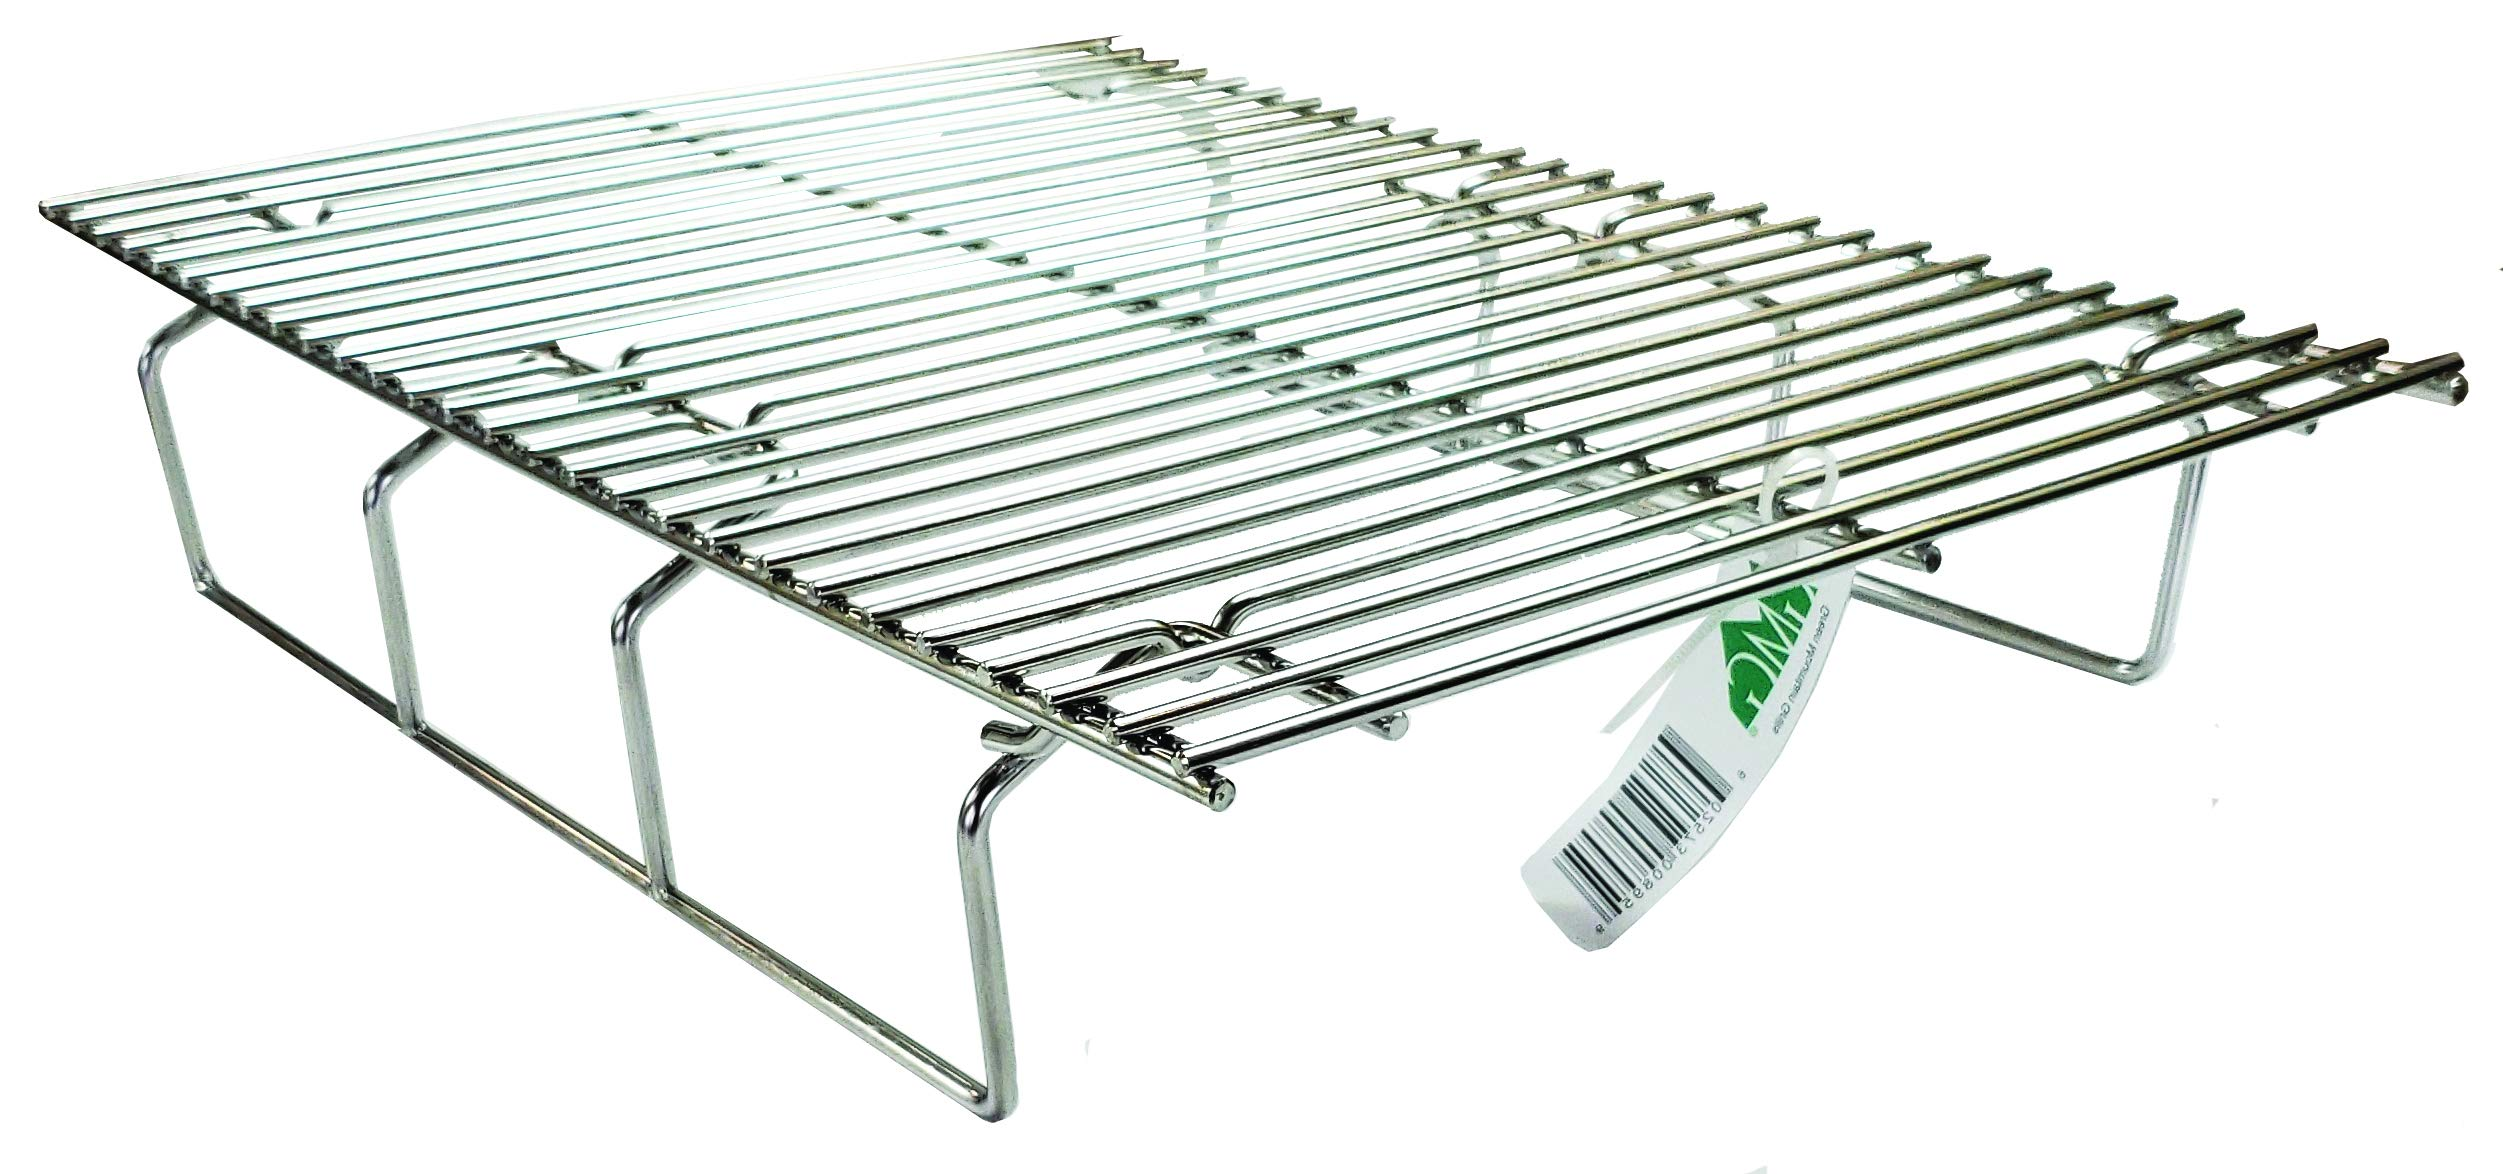 Green Mountain Grills GMG-6034 Collapsible Upper Rack for Davy Crockett Pellet Grill, Stainless Steel by Green Mountain Grills